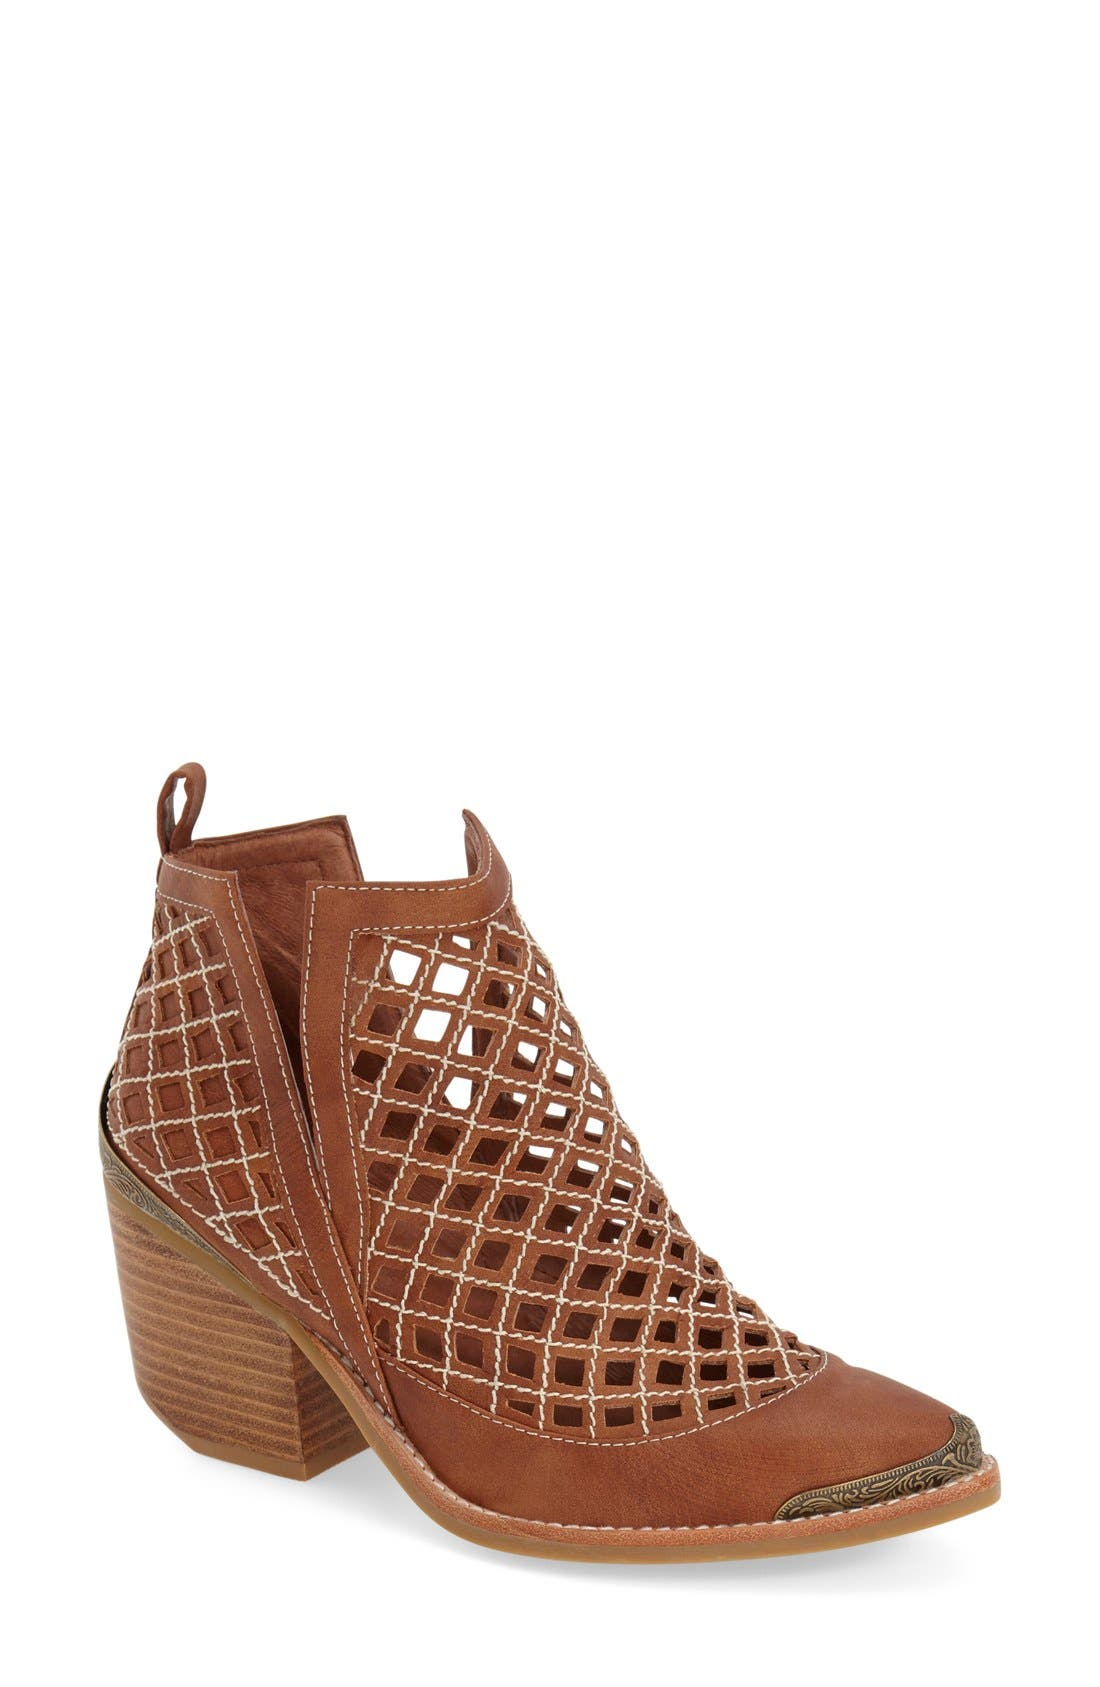 Main Image - Jeffrey Campbell 'Cromwell' Cutout Ankle Bootie (Women)